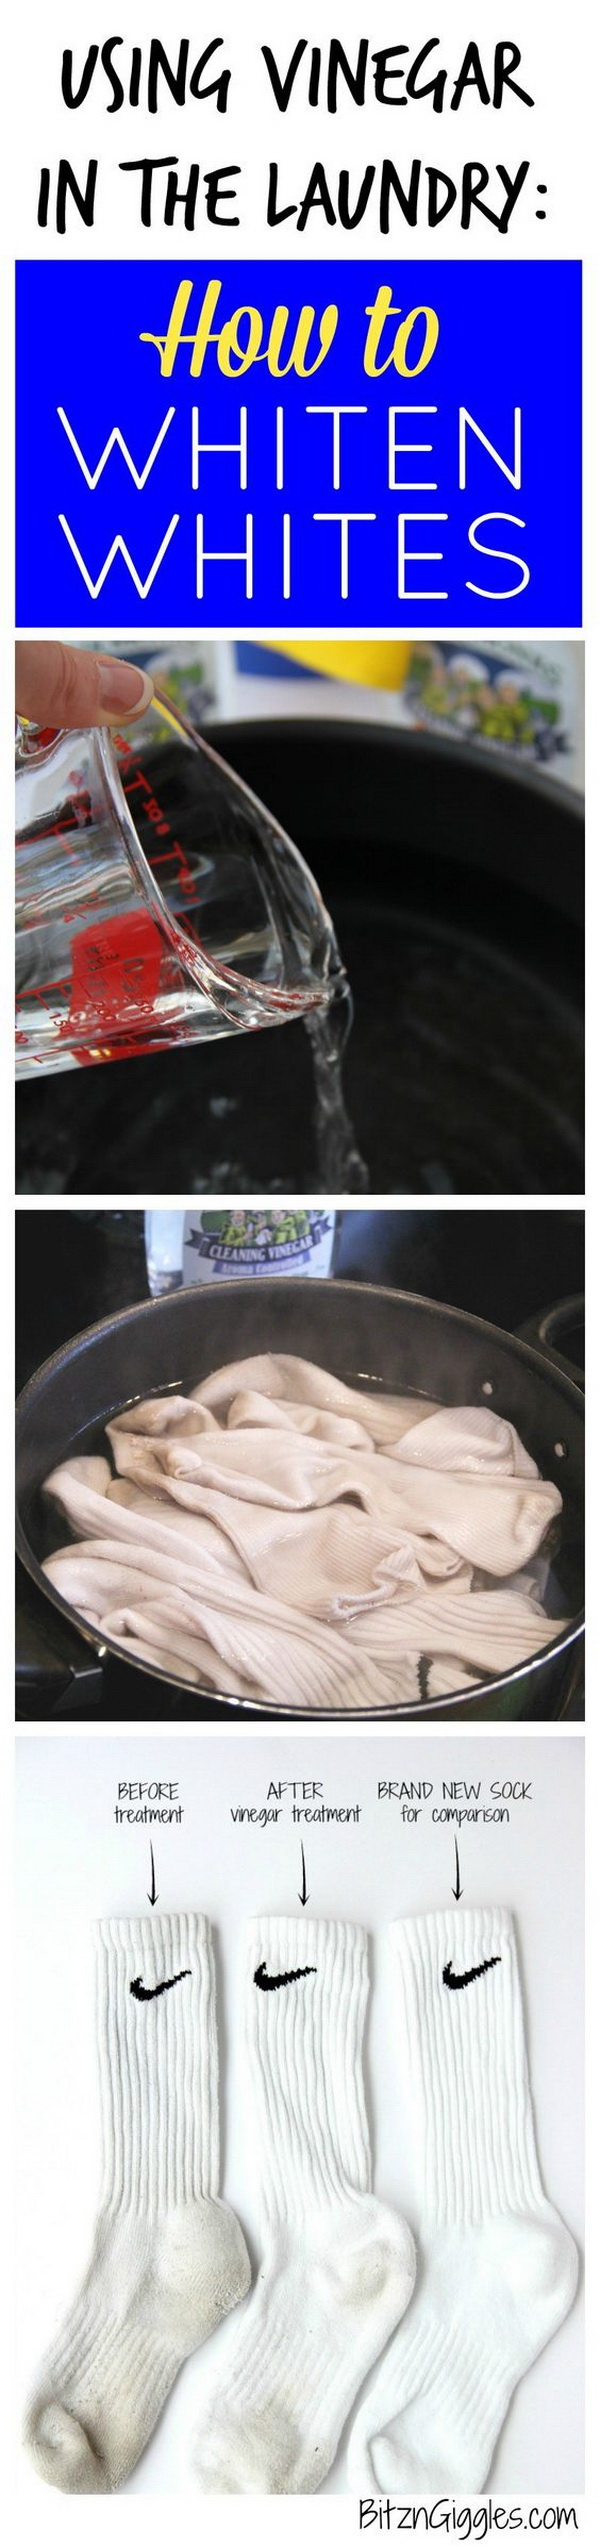 Using Vinegar in the Laundry to Whiten Whites: See how to use a natural cleaner to brighten dingy white socks and clothes.